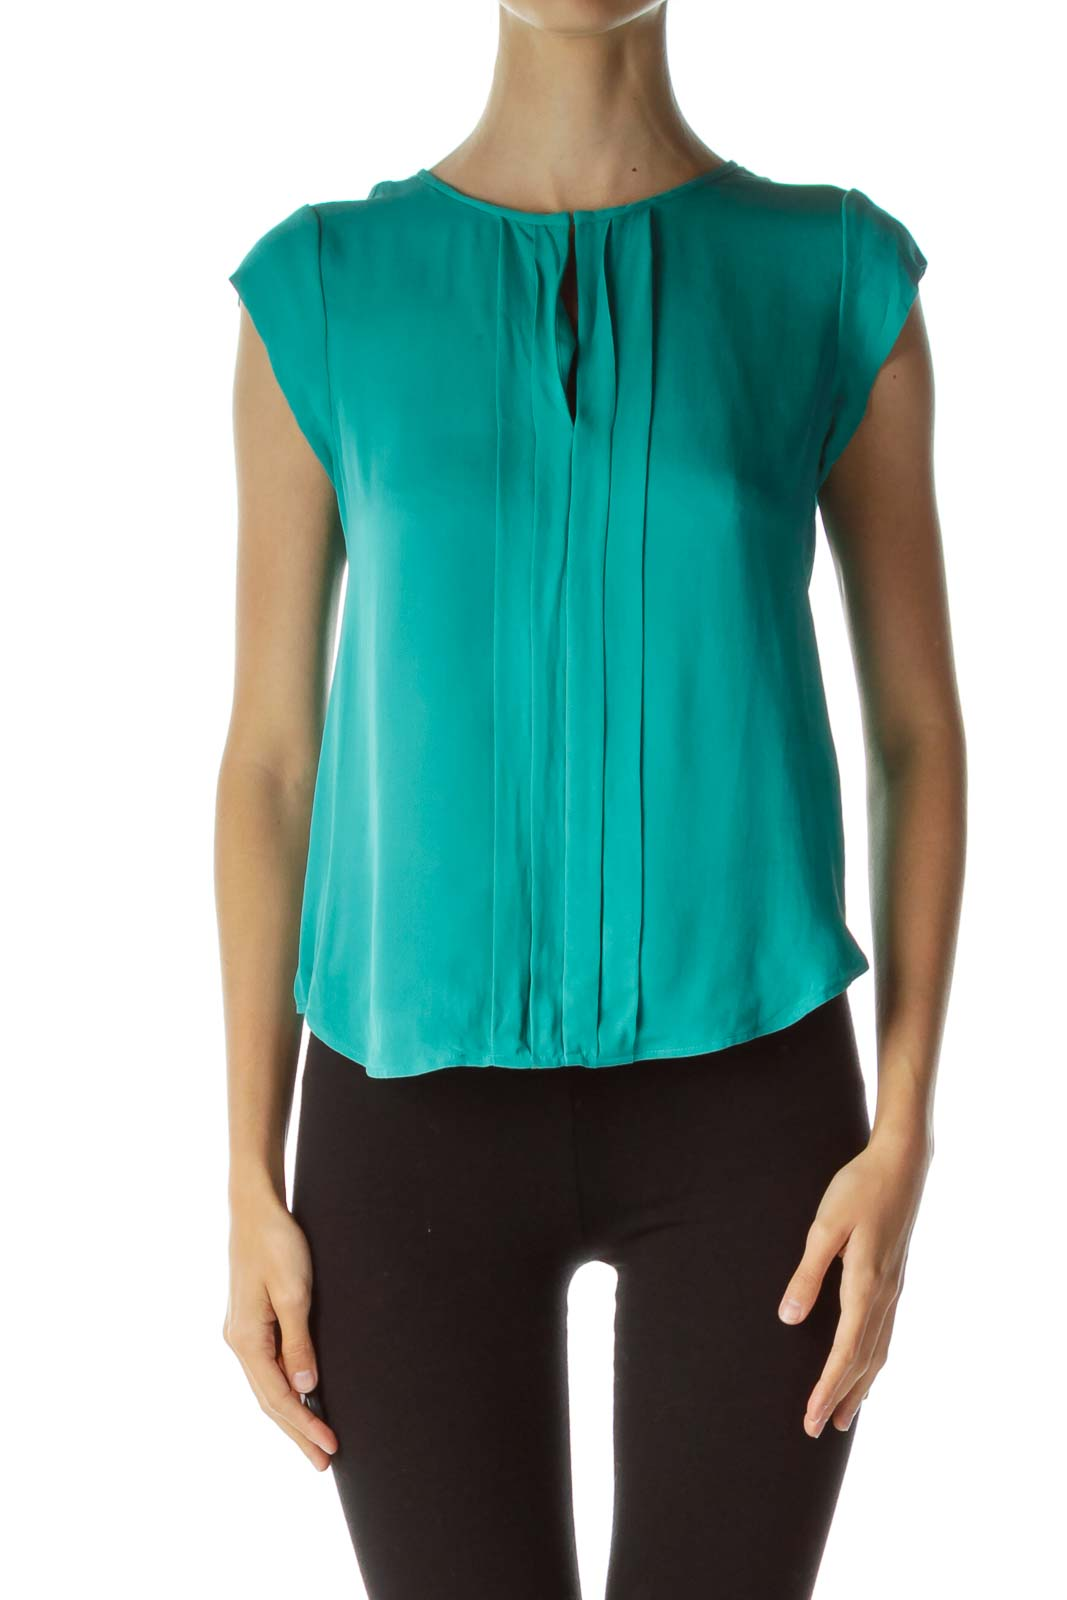 1b3a883b60328 Shop Teal V-neck Silk Blouse clothing and handbags at SilkRoll ...